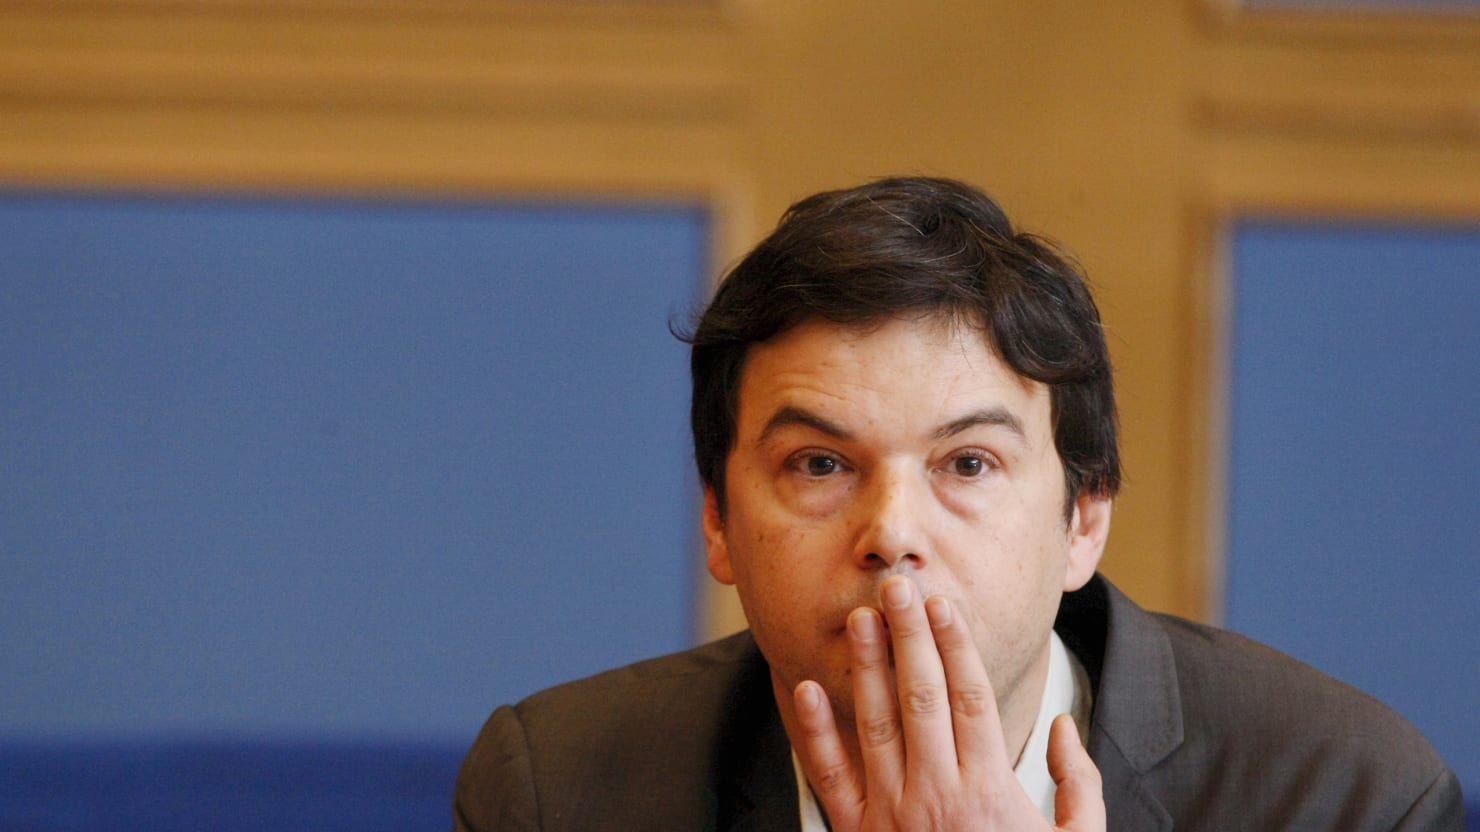 How to Think About Economic Inequality After Thomas Piketty